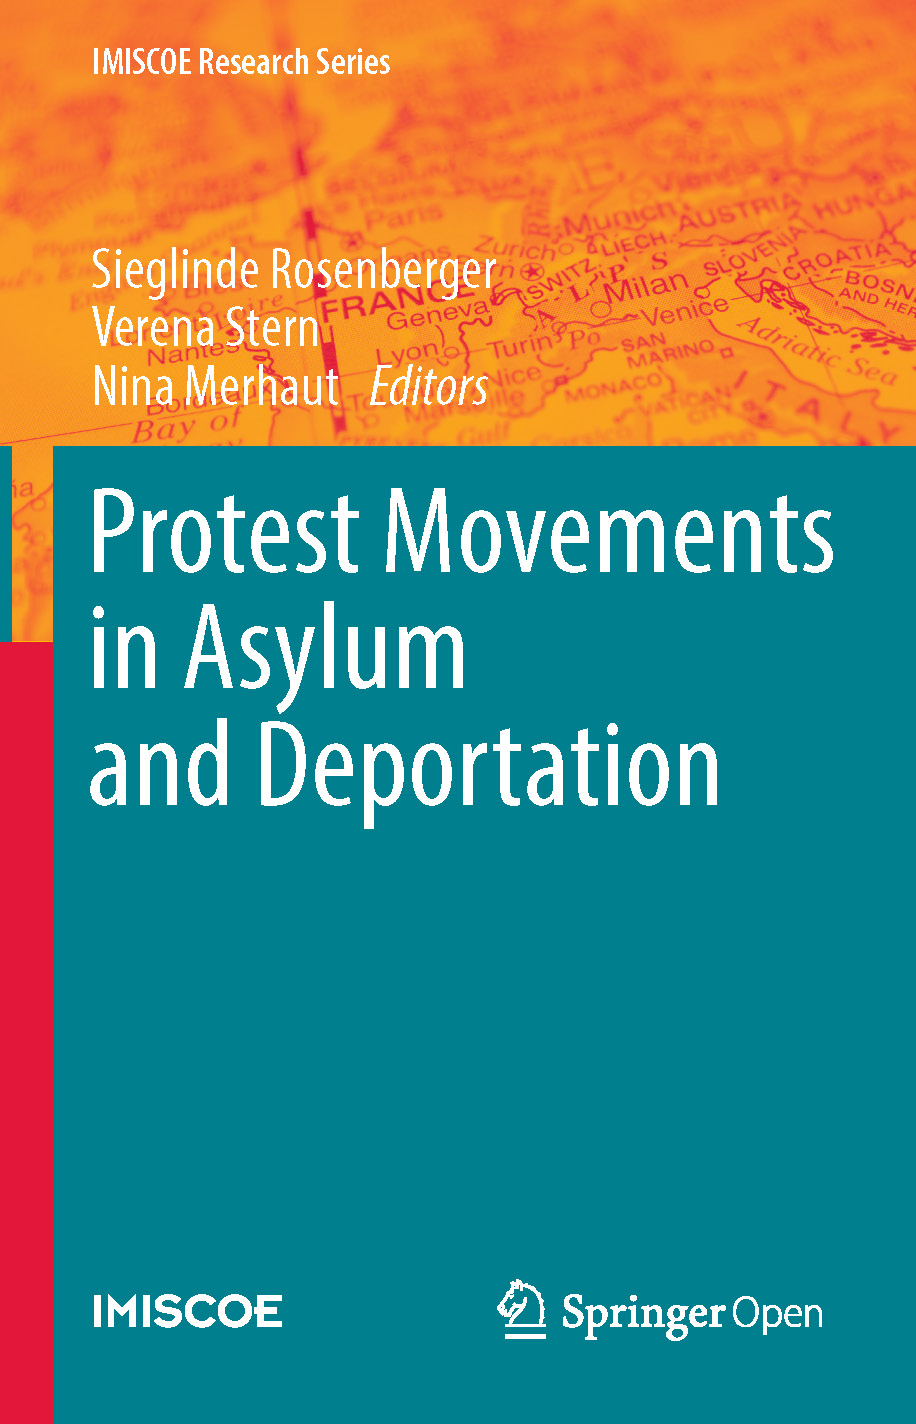 Cover of Protest Movements in Asylum and Deportation